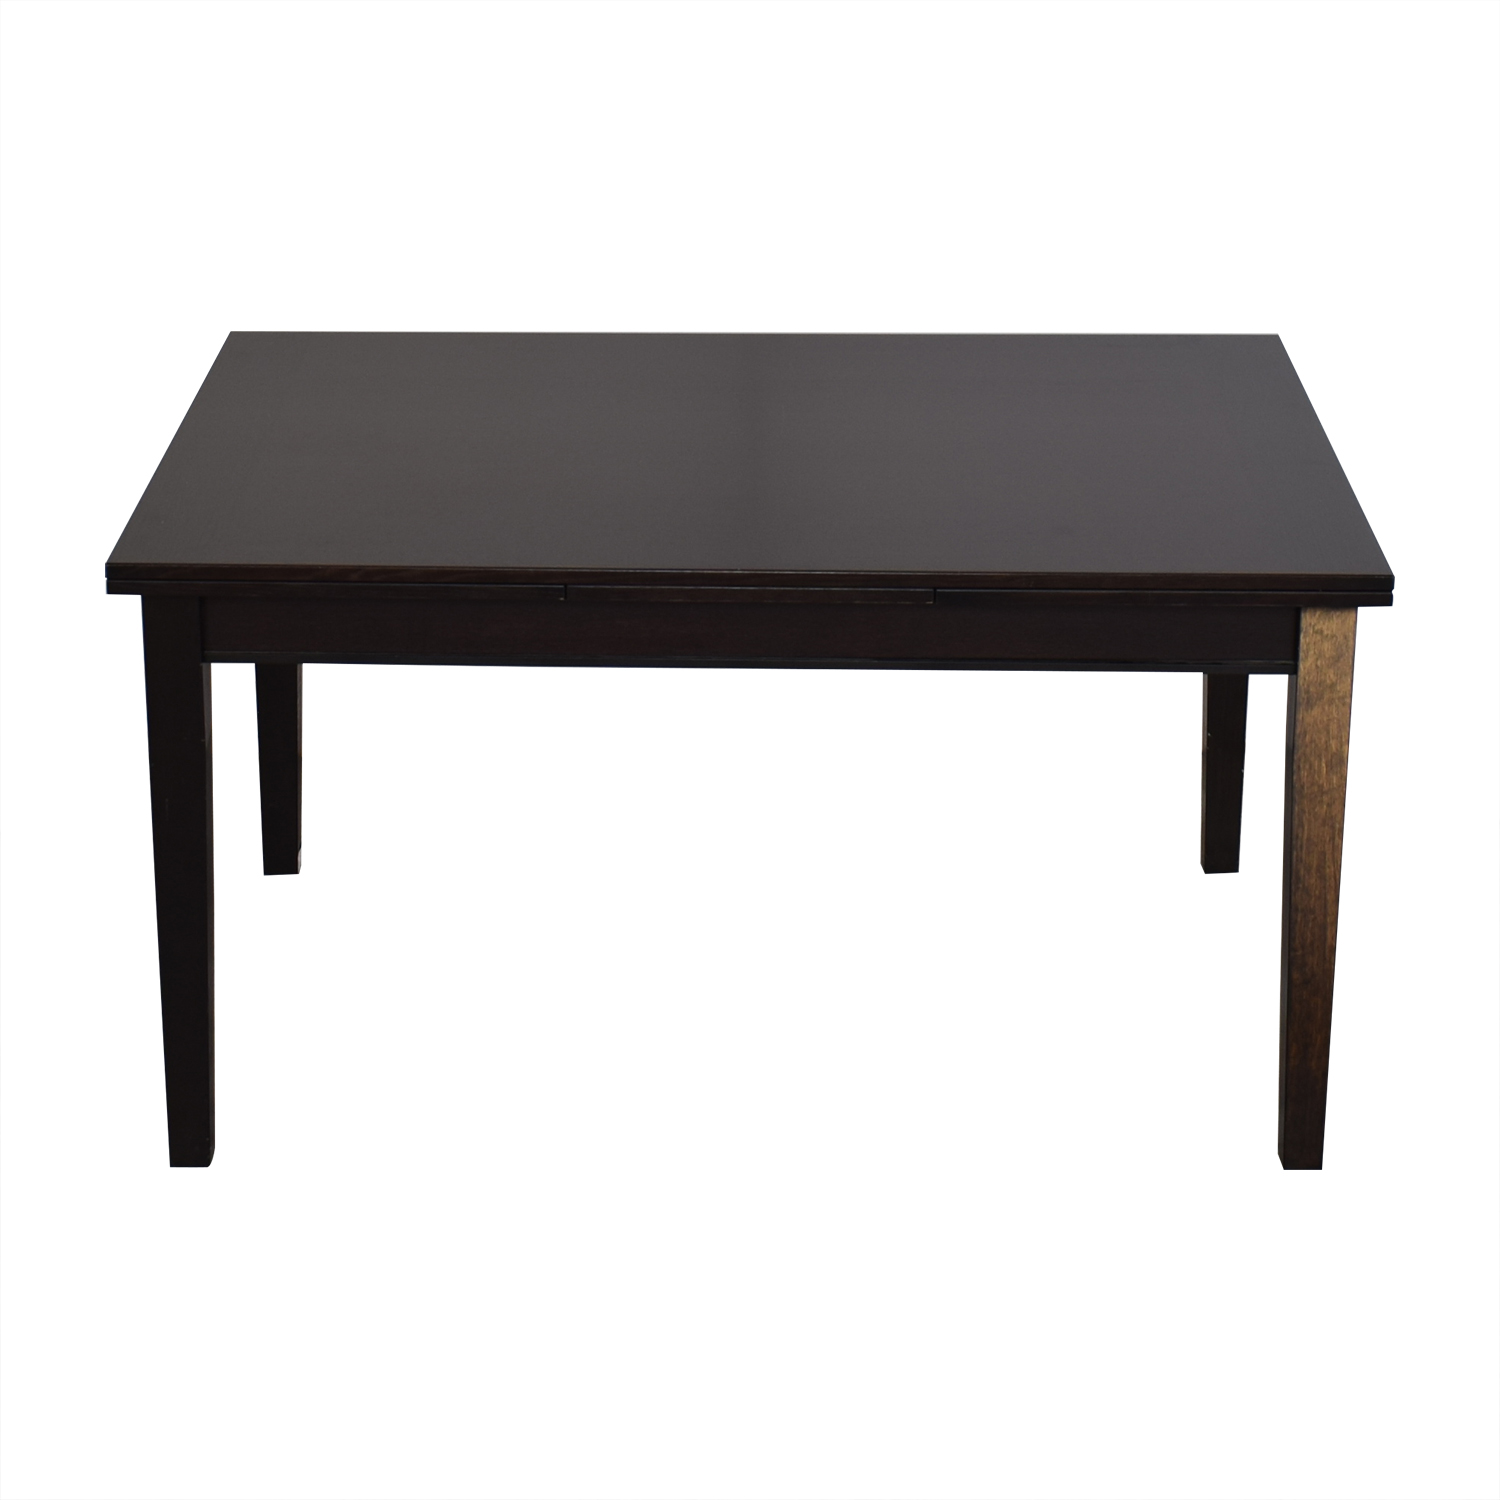 shop Crate & Barrel Pratico Bruno Extension Square Dining Table Crate & Barrel Dinner Tables